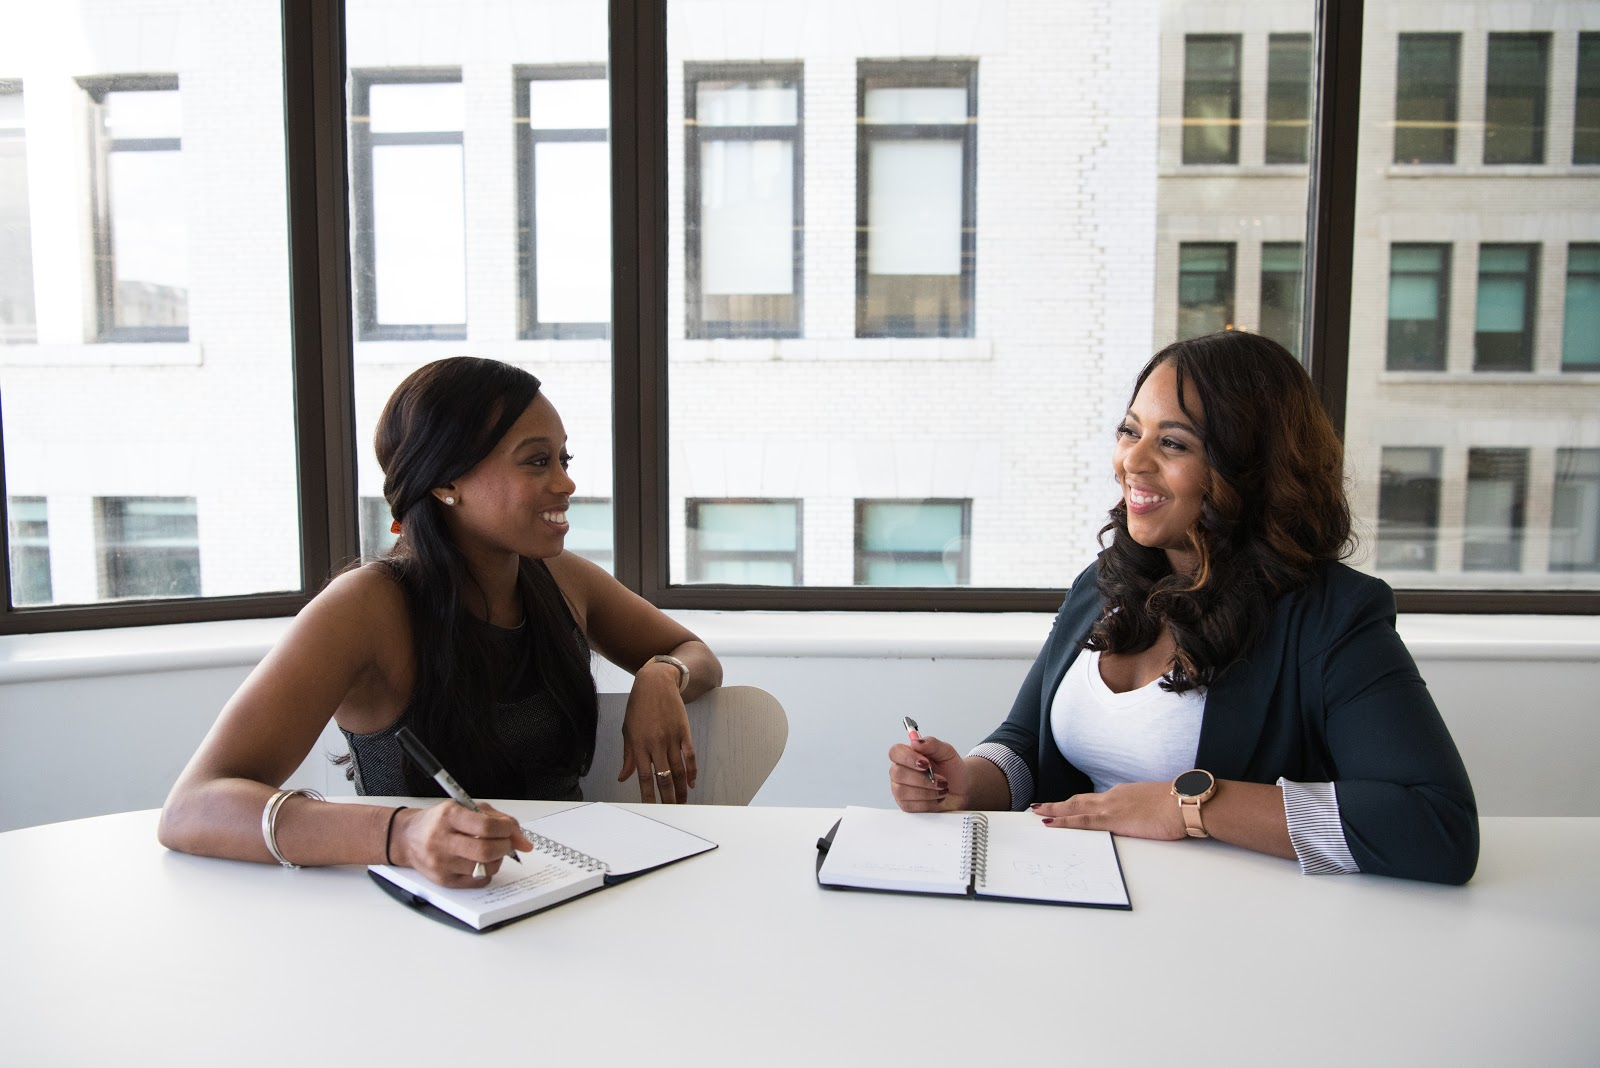 two women chat while at work in a tech office